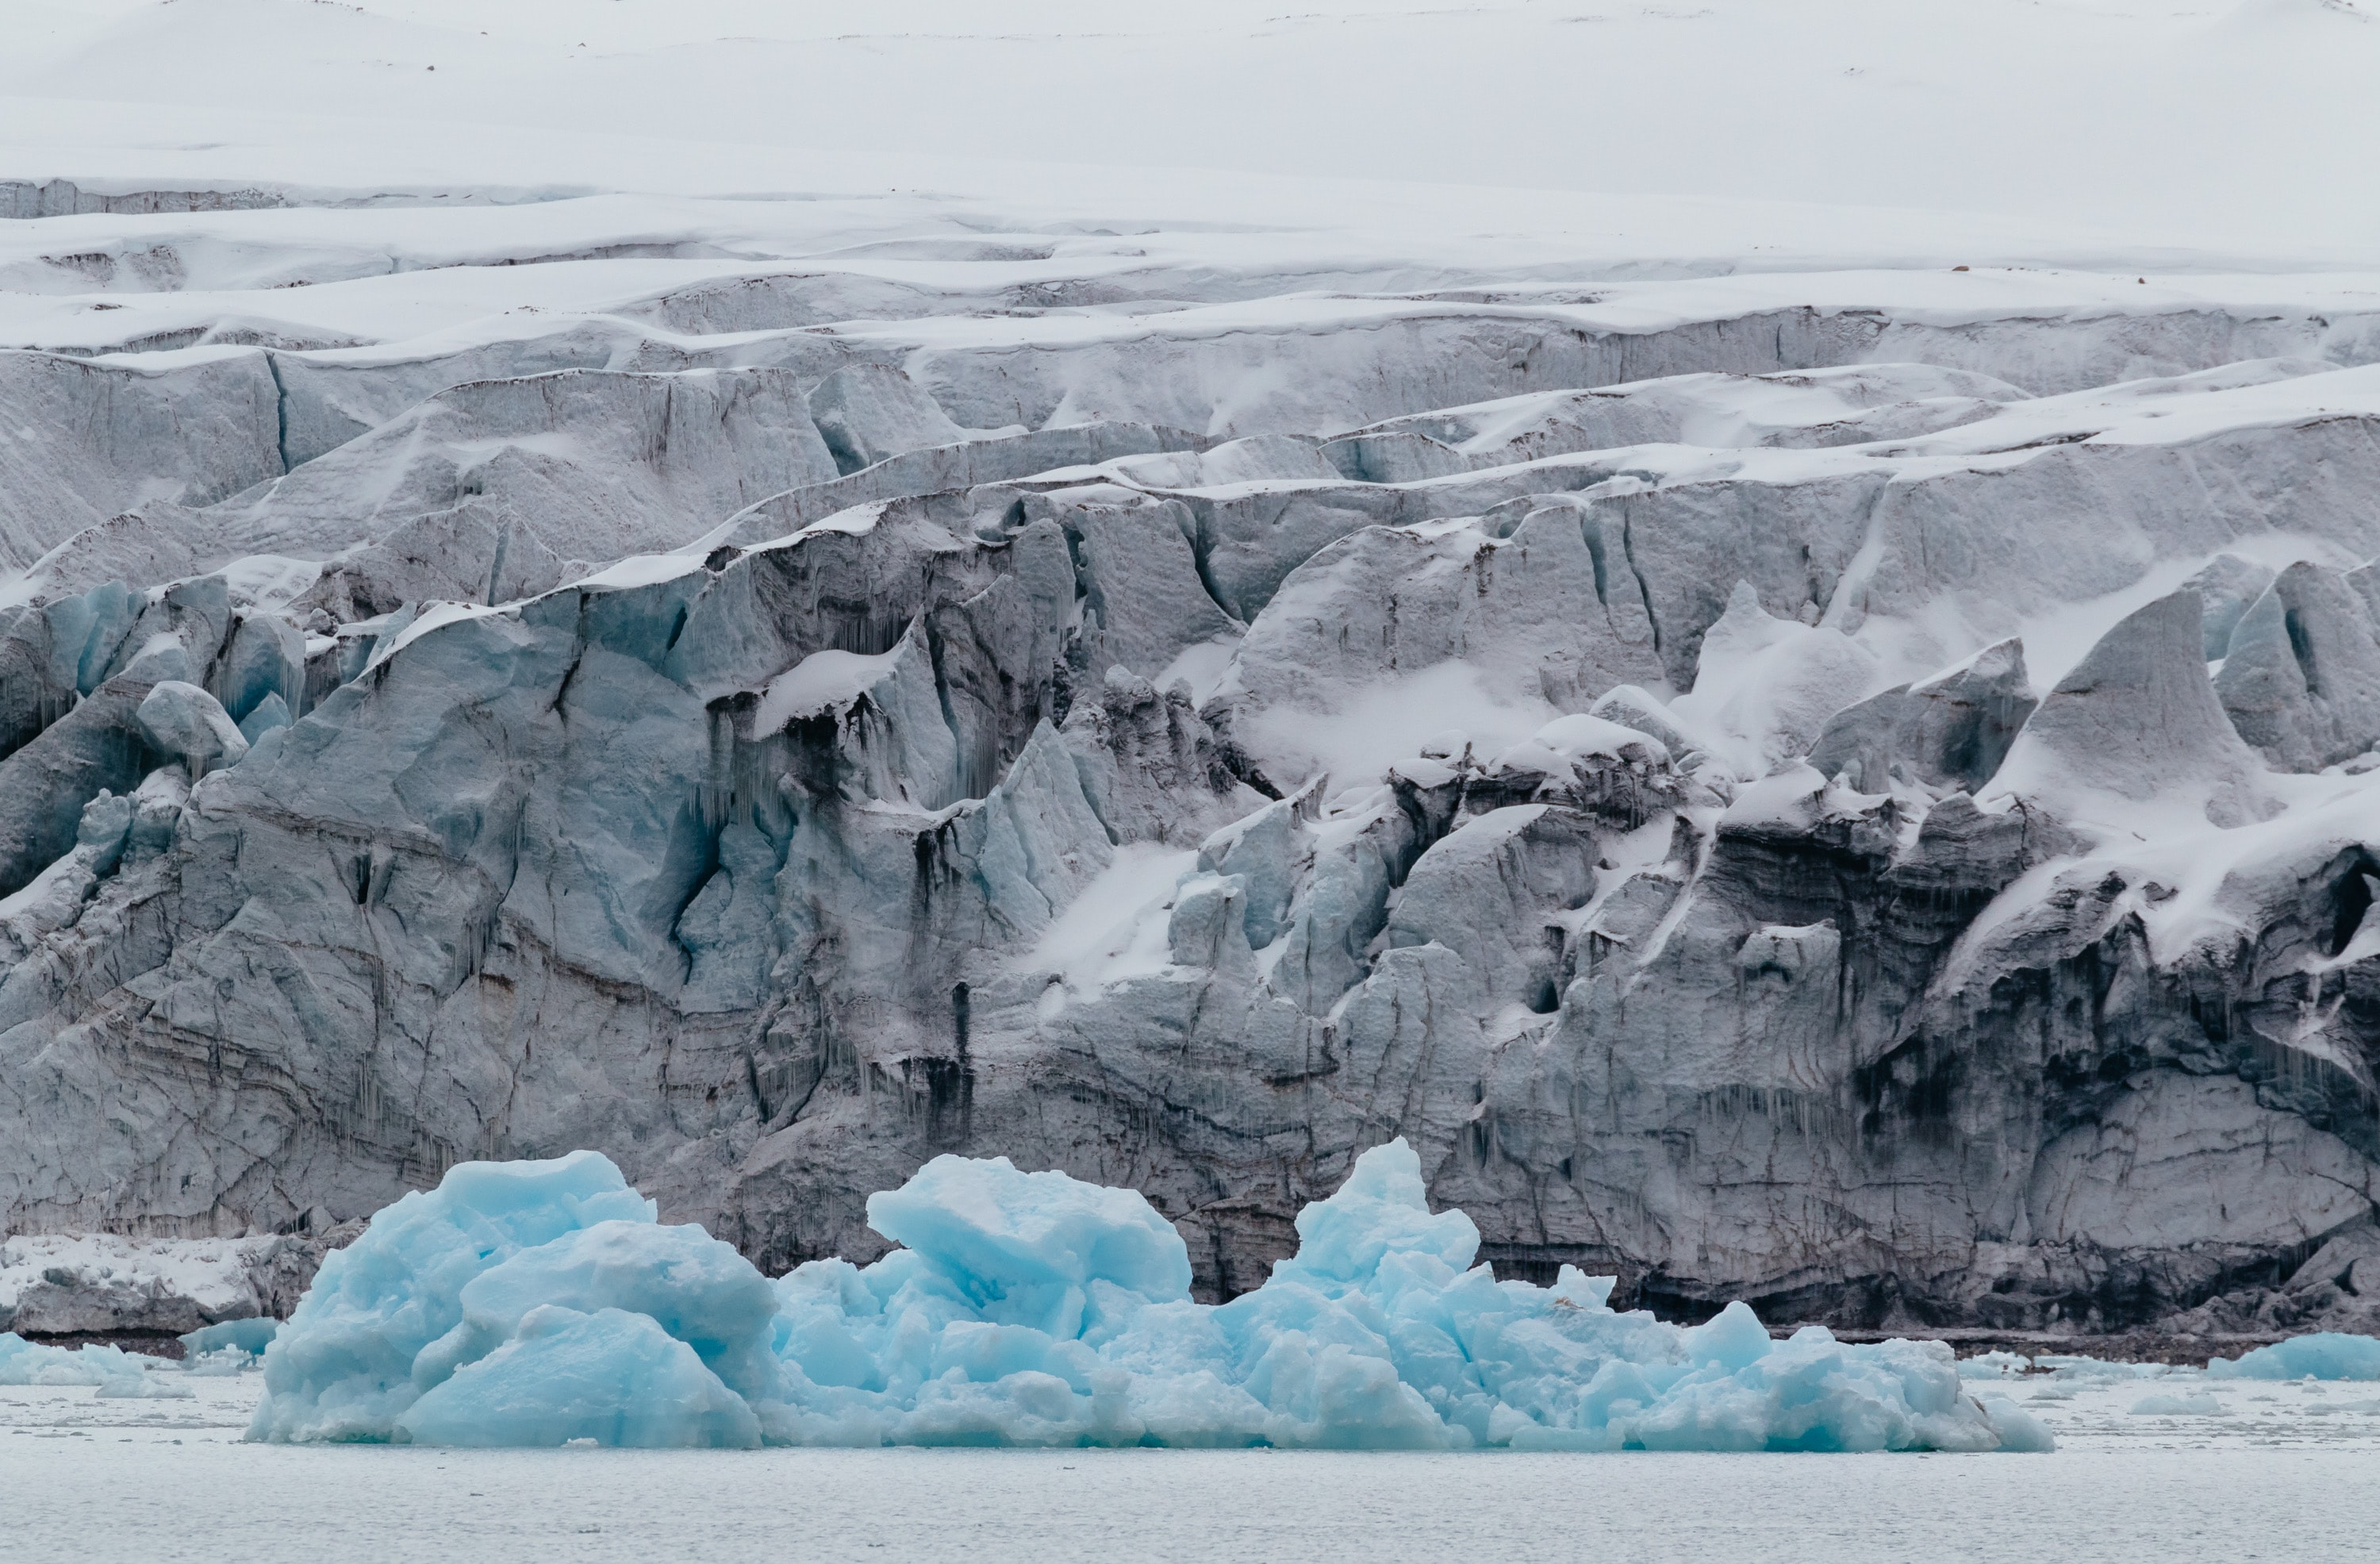 Ice glaciers in the water and snow covered rock formations in the background in Svalbard